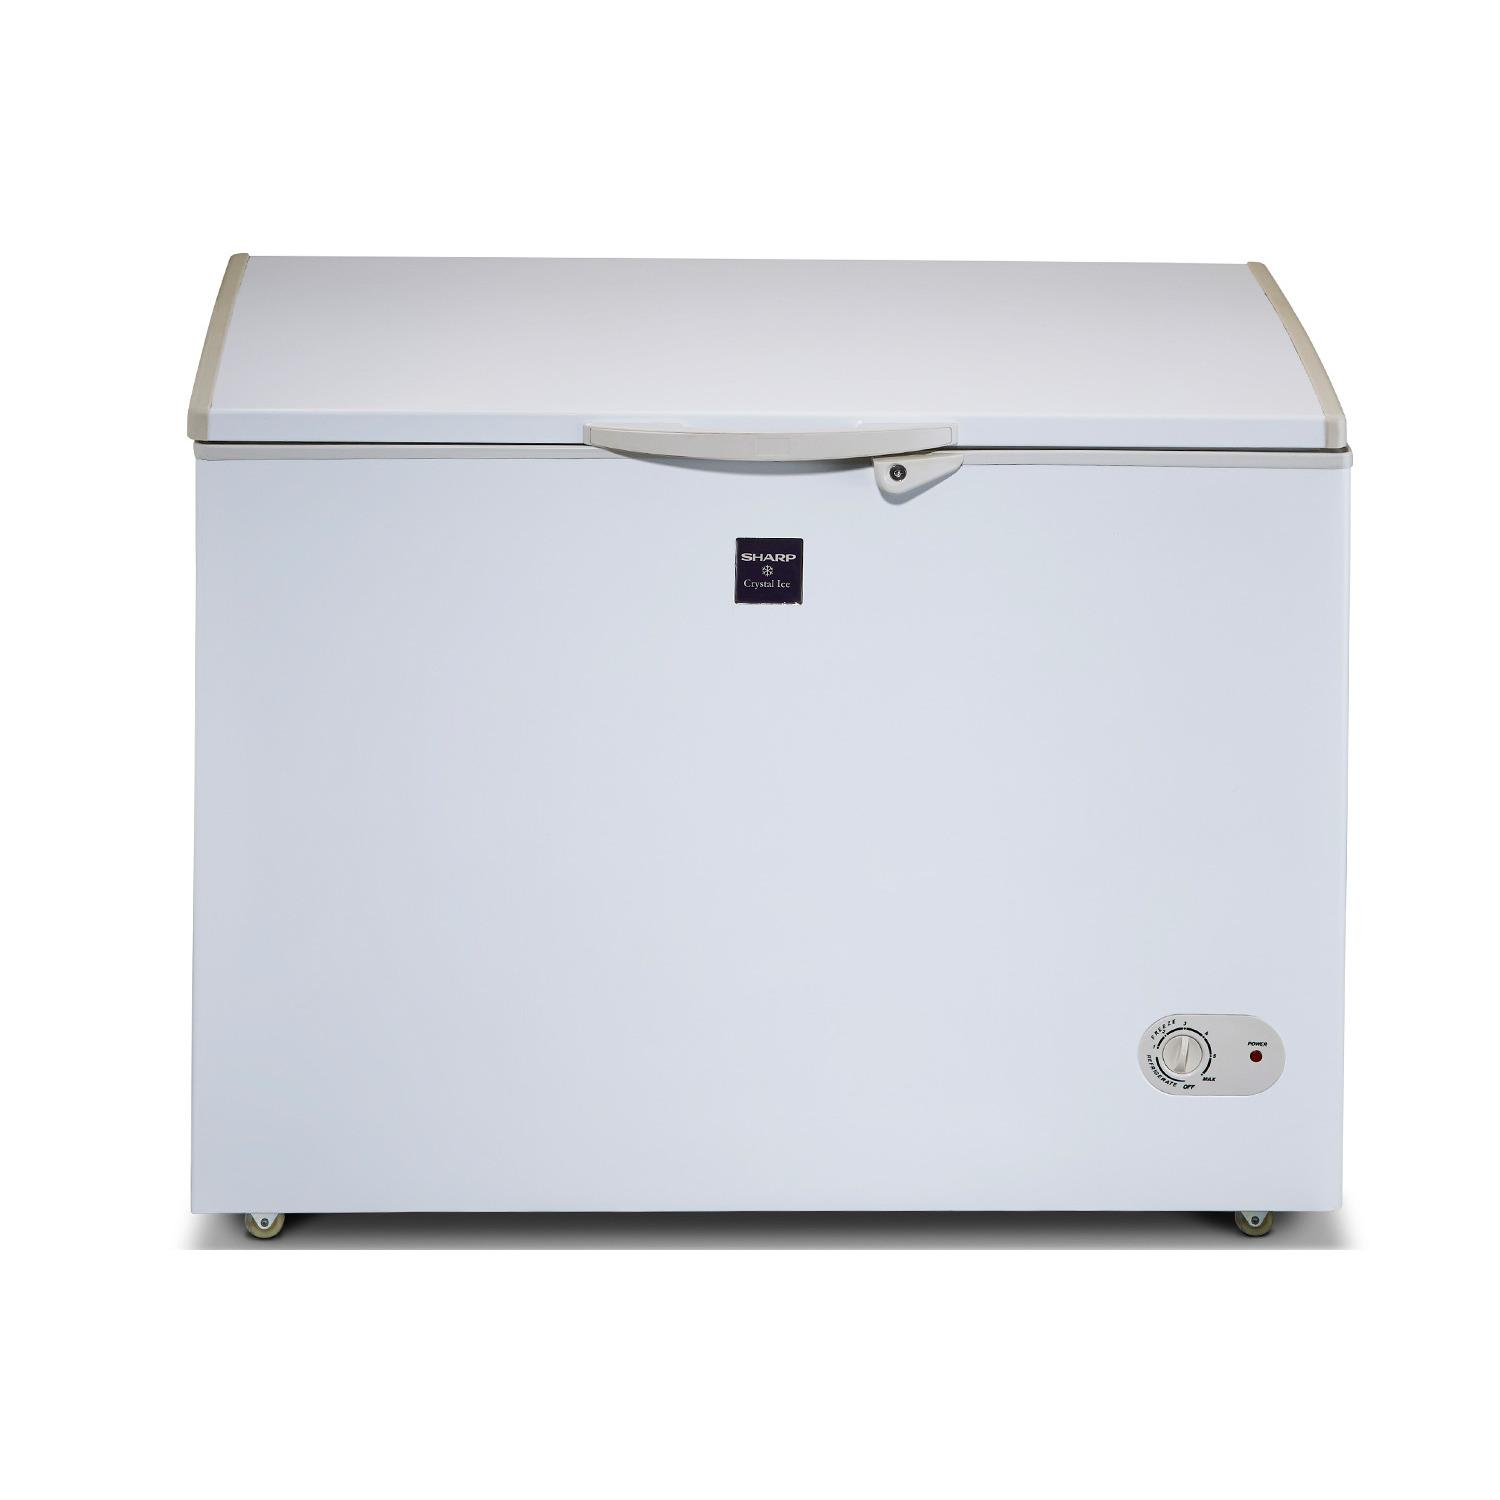 Rumah · Sharp Lemari Es. Sharp Chest Freezer FRV-300, Cap. 300